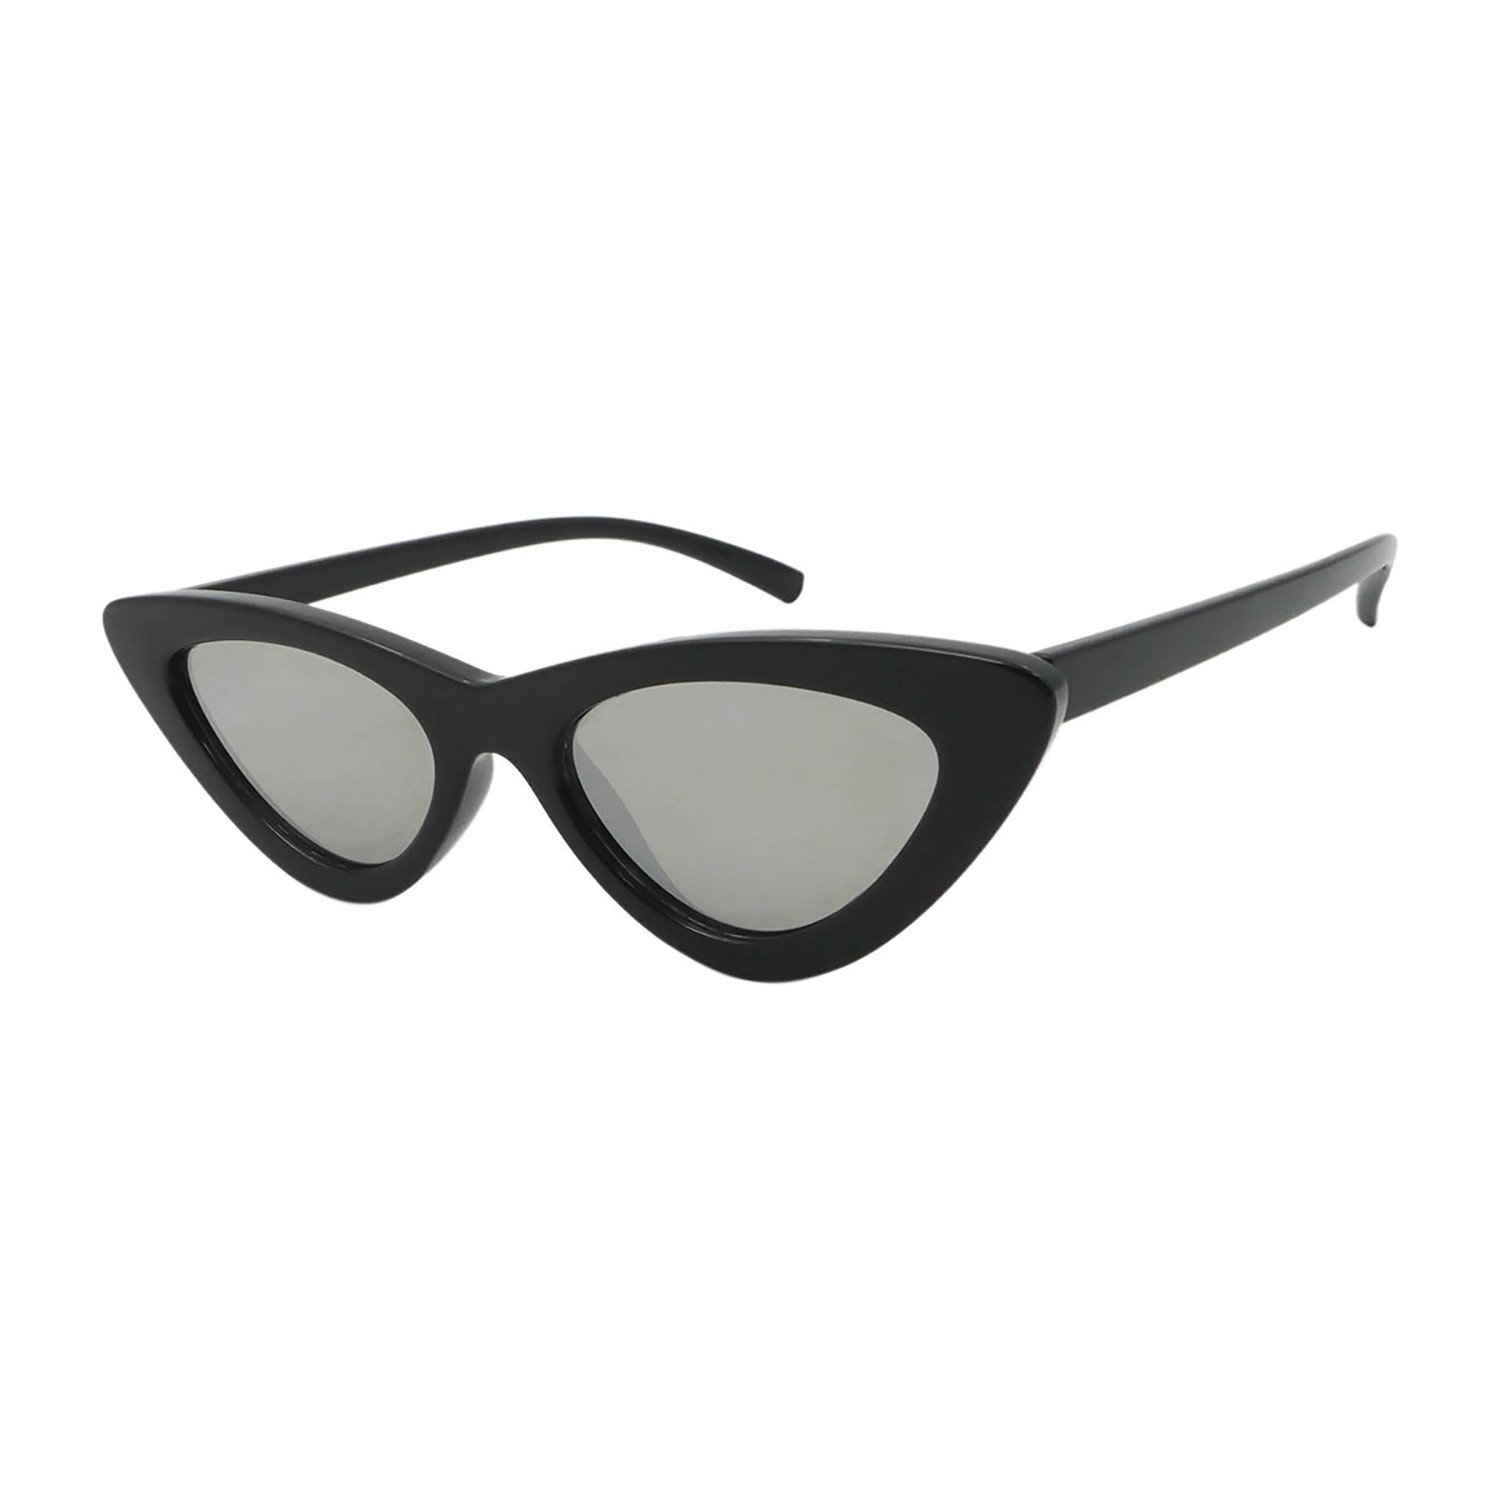 LOLITA SHAPE POLYCARBONATE SHINY BLACK SILVER MIRROR LENS